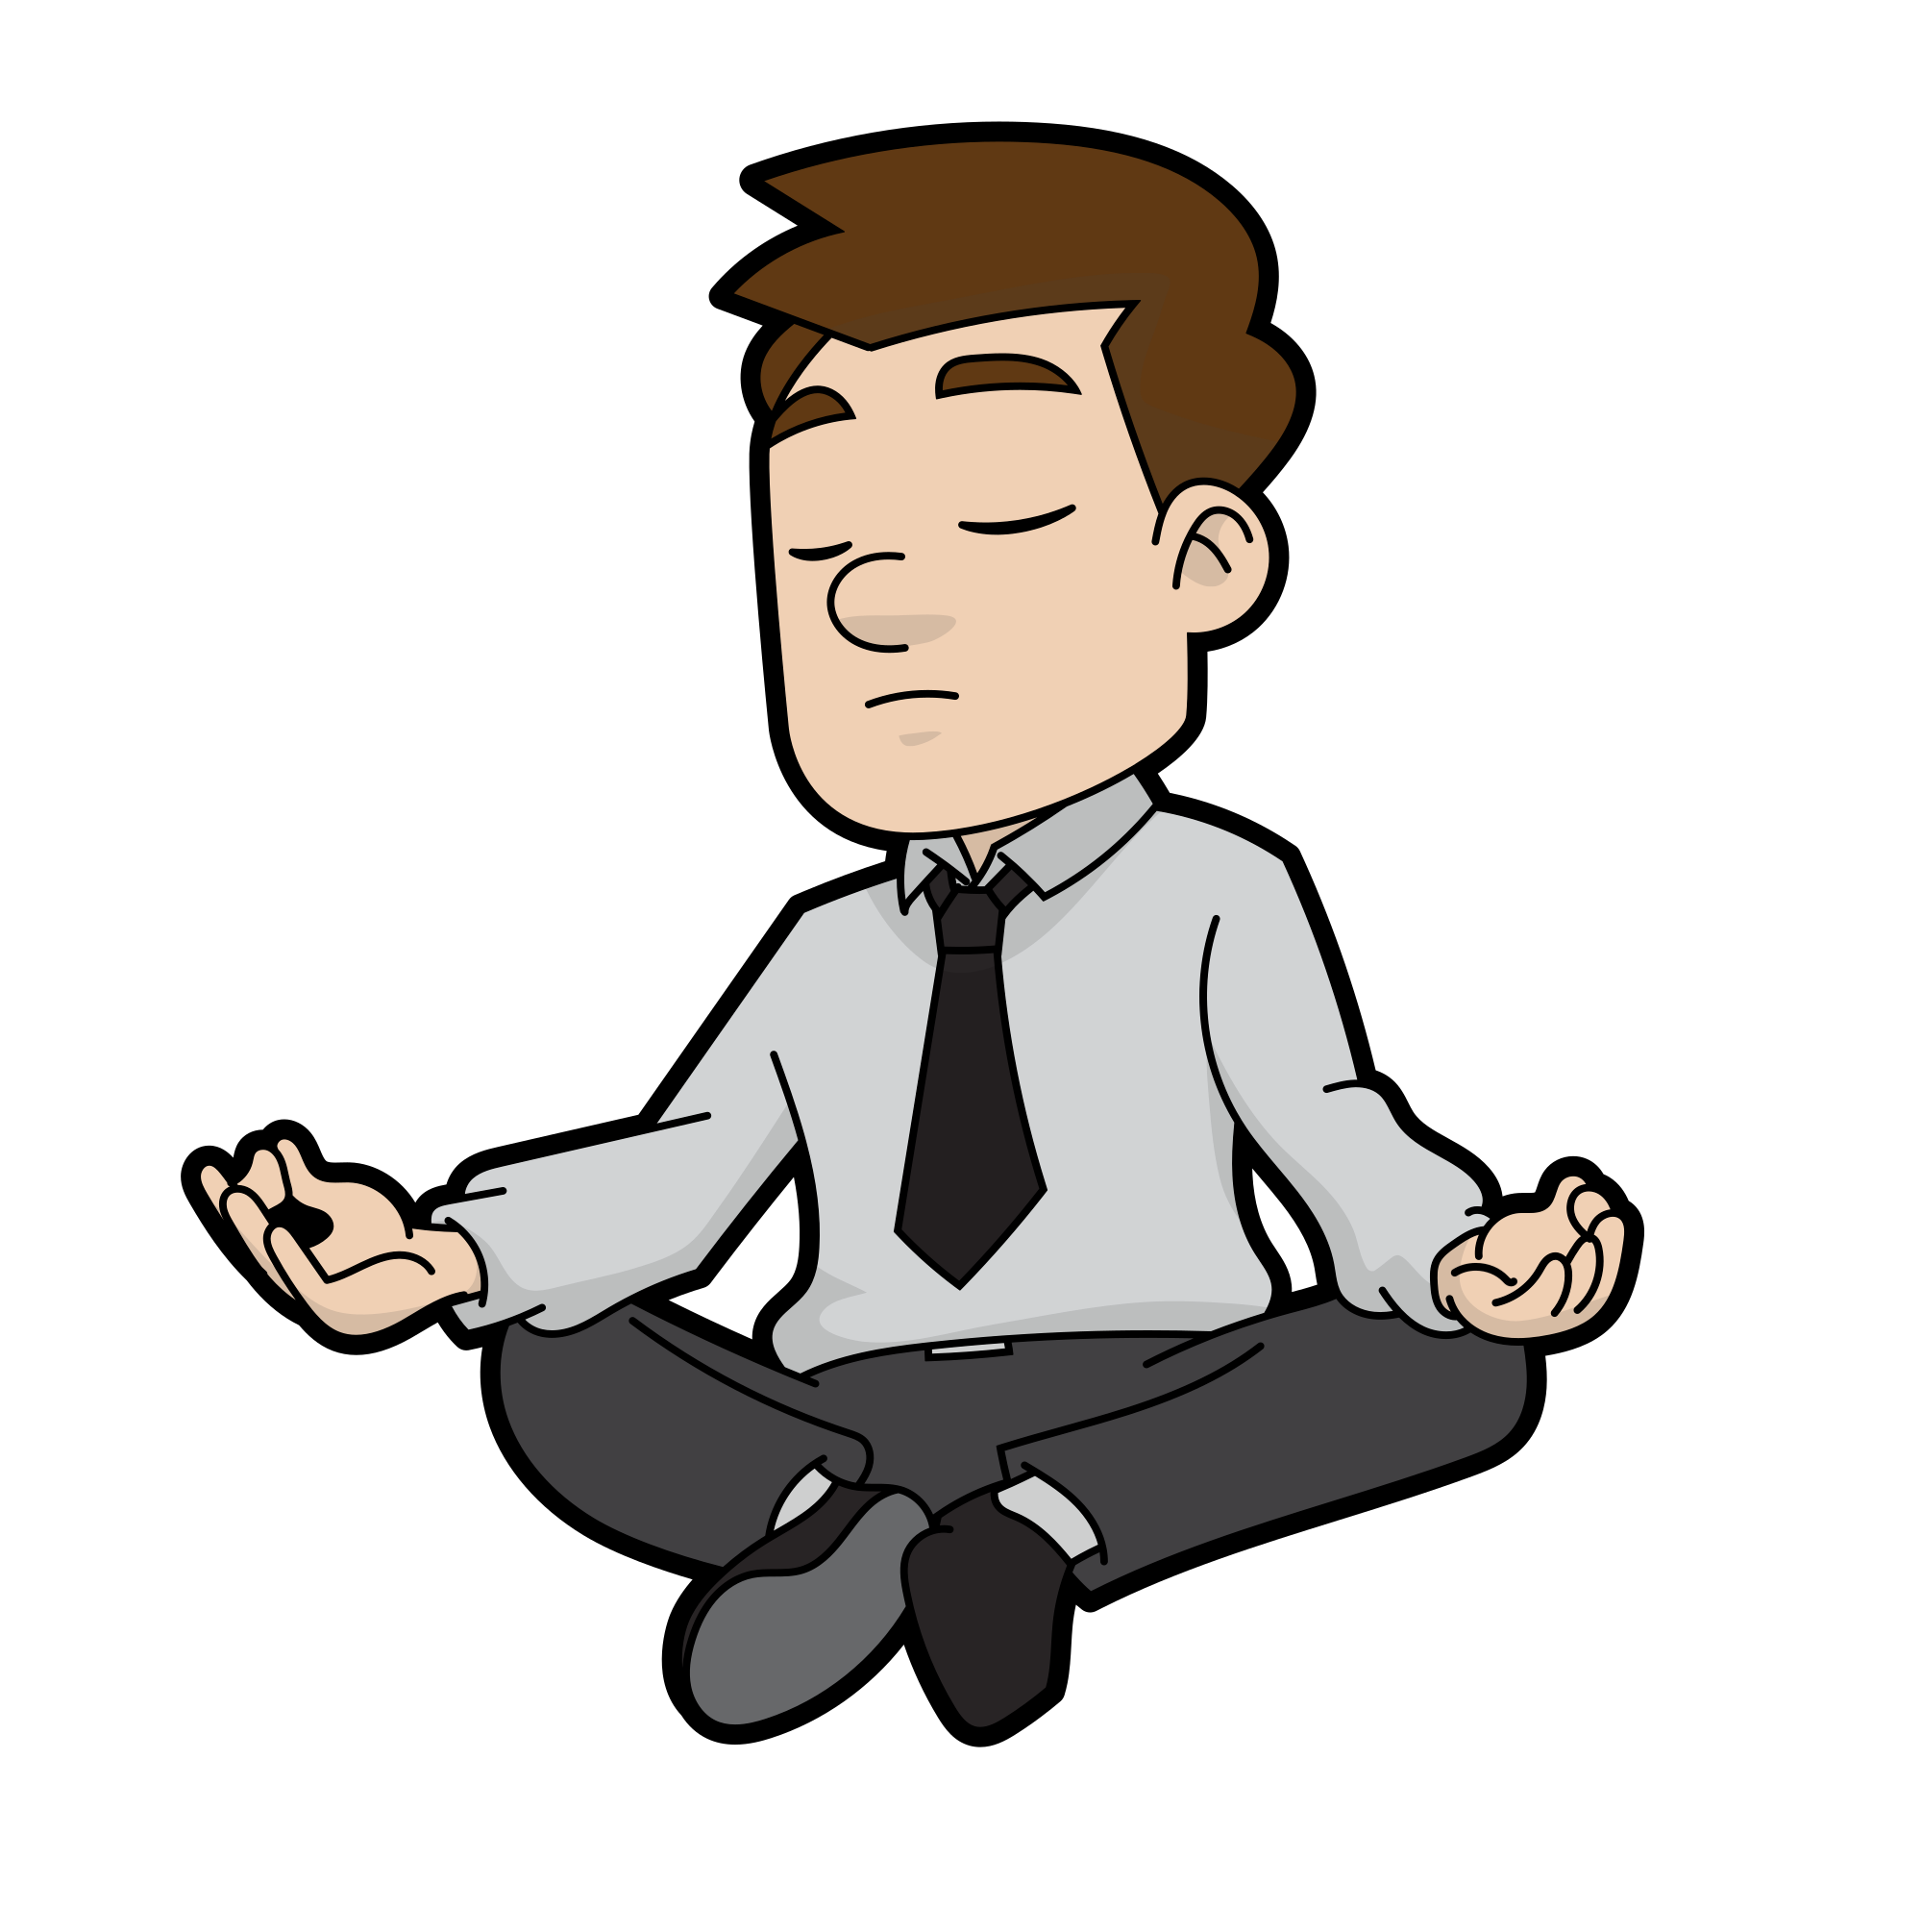 jpg transparent library How to Meditate by Yourself